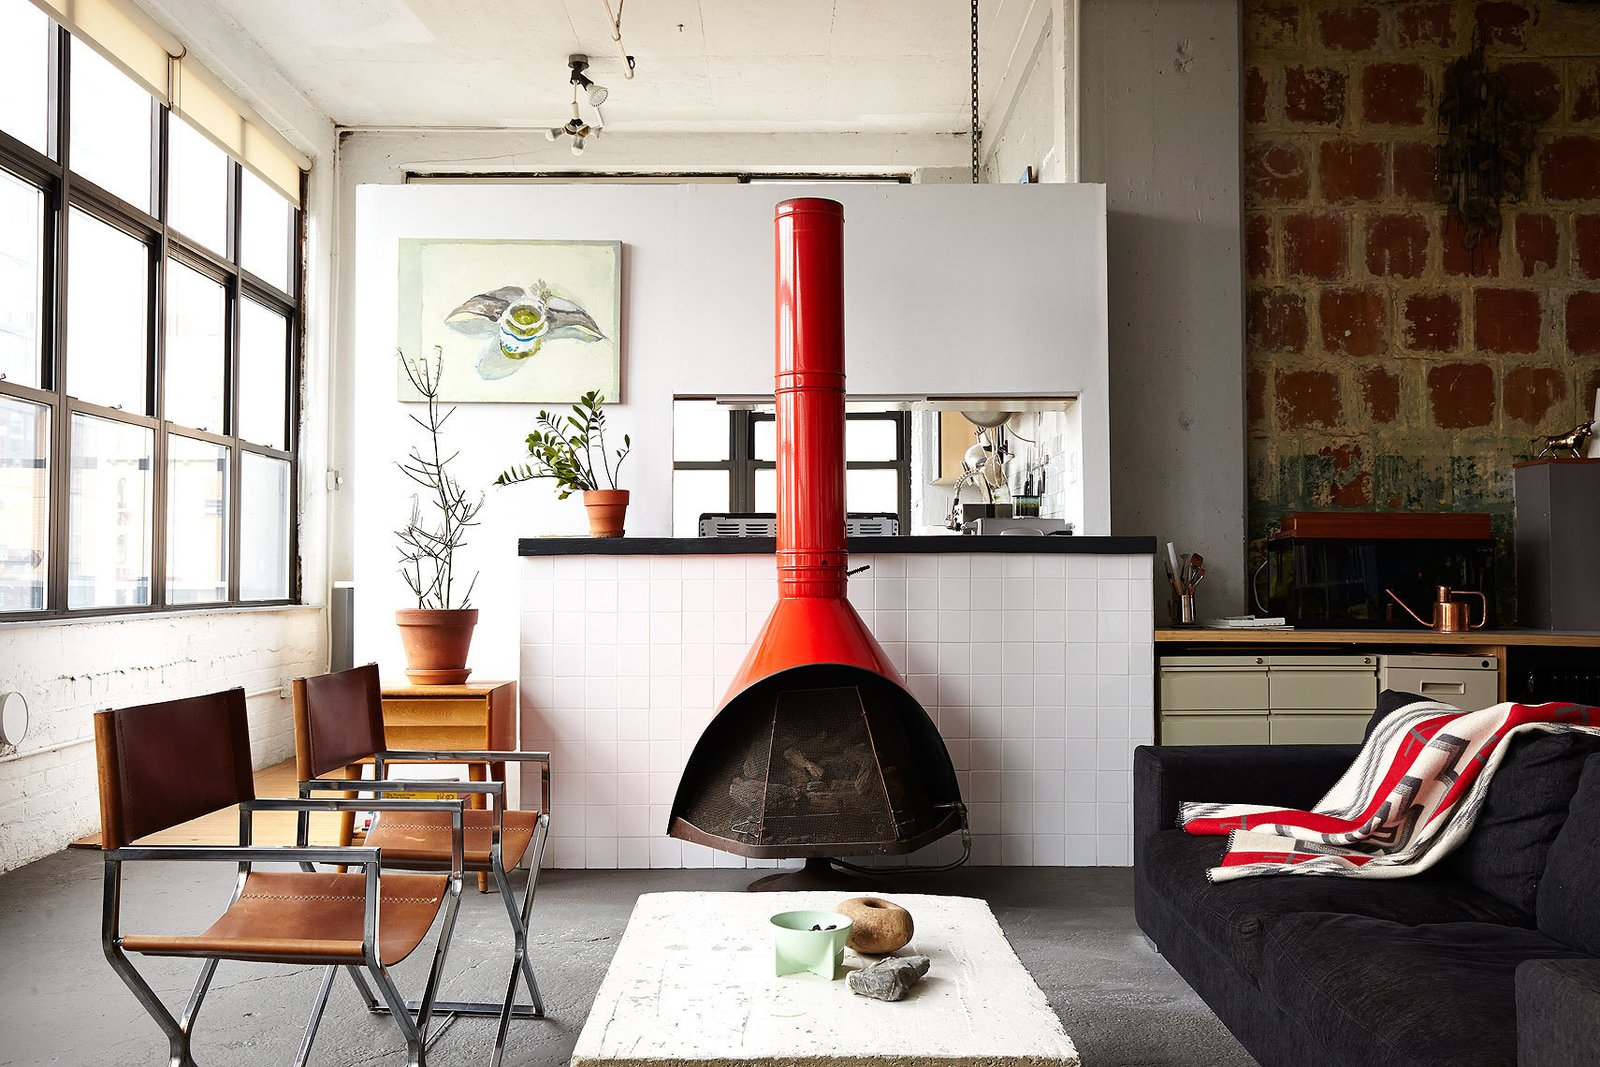 """I'm not trying to hide anything. I wanted to stay true to the industrial look,"" explains Owen Wright, the owner of this Brooklyn loft. Owen works with his building's landlord and consequently has accrued countless pieces of furniture from both former tenants and Craigslist—including this 1960's fireplace and pair of steel frame chairs Owen had reupholstered. A BoConcept sofa and coffee table Owen constructed himself complete the living room. 97+ Modern Fireplace Ideas by Dwell"